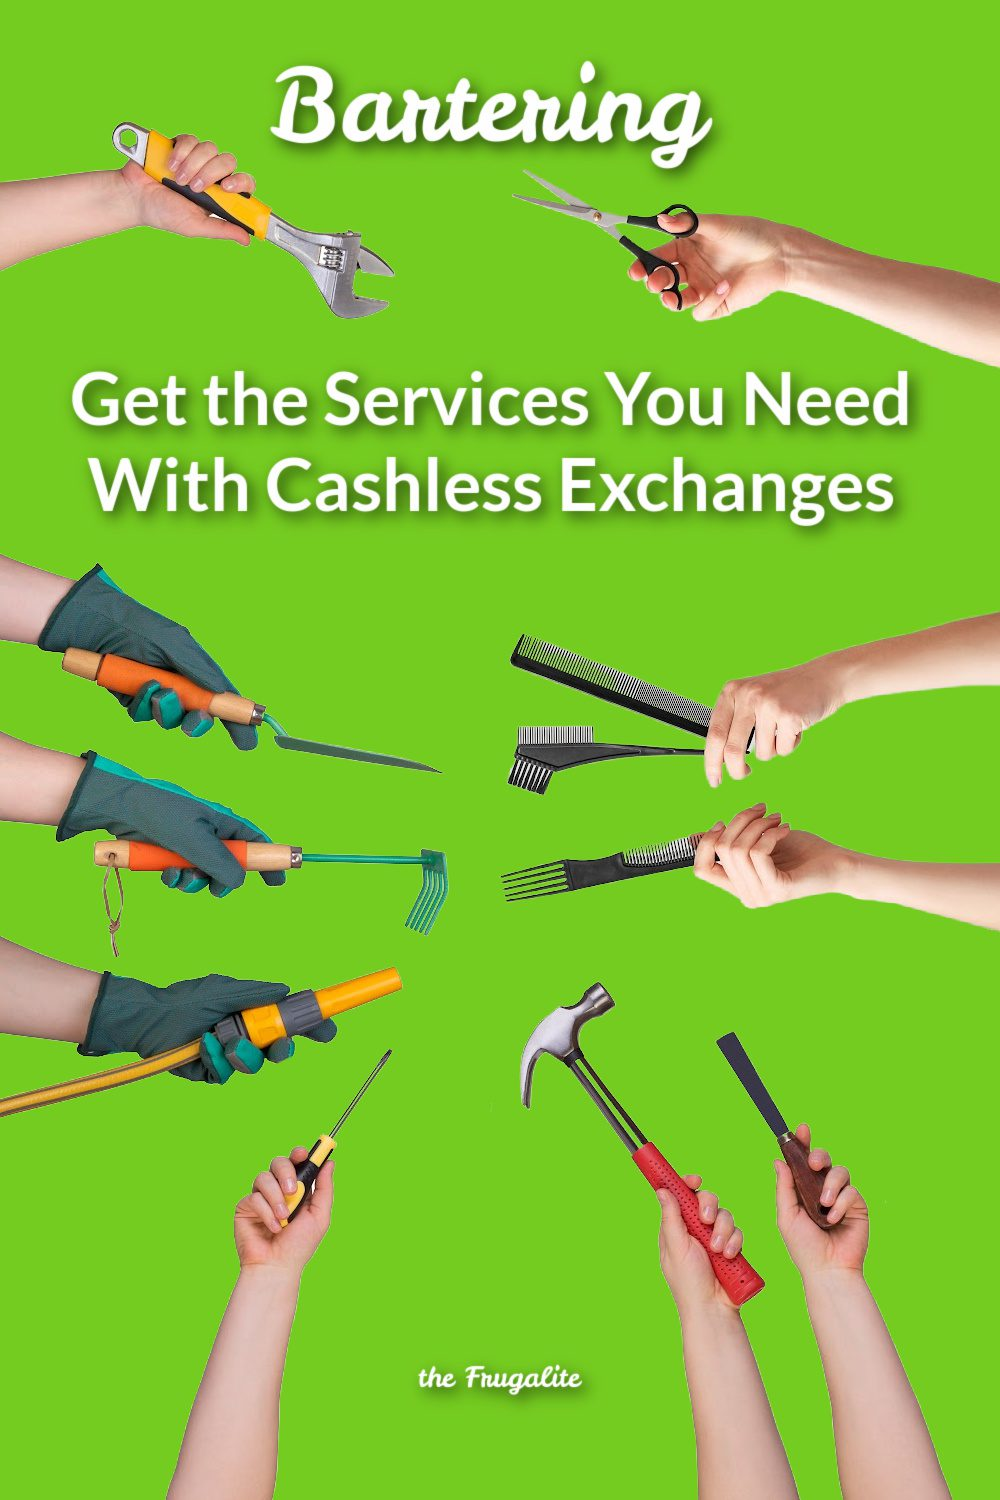 Bartering: Get the Services You Need With Cashless Exchanges